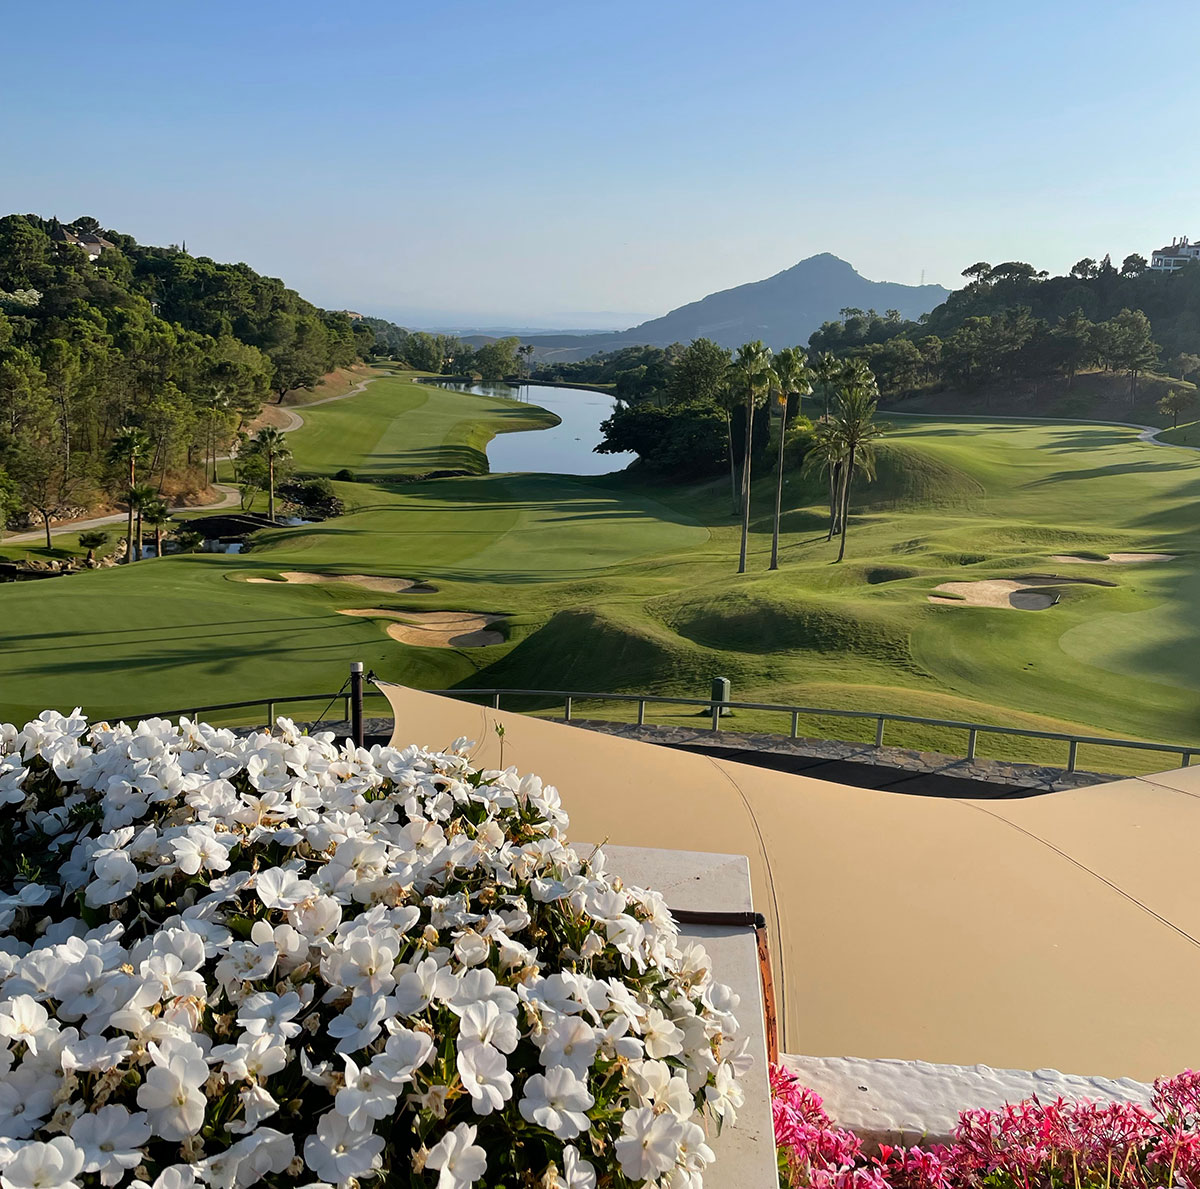 La Zagaleta golf course from the Clubhouse